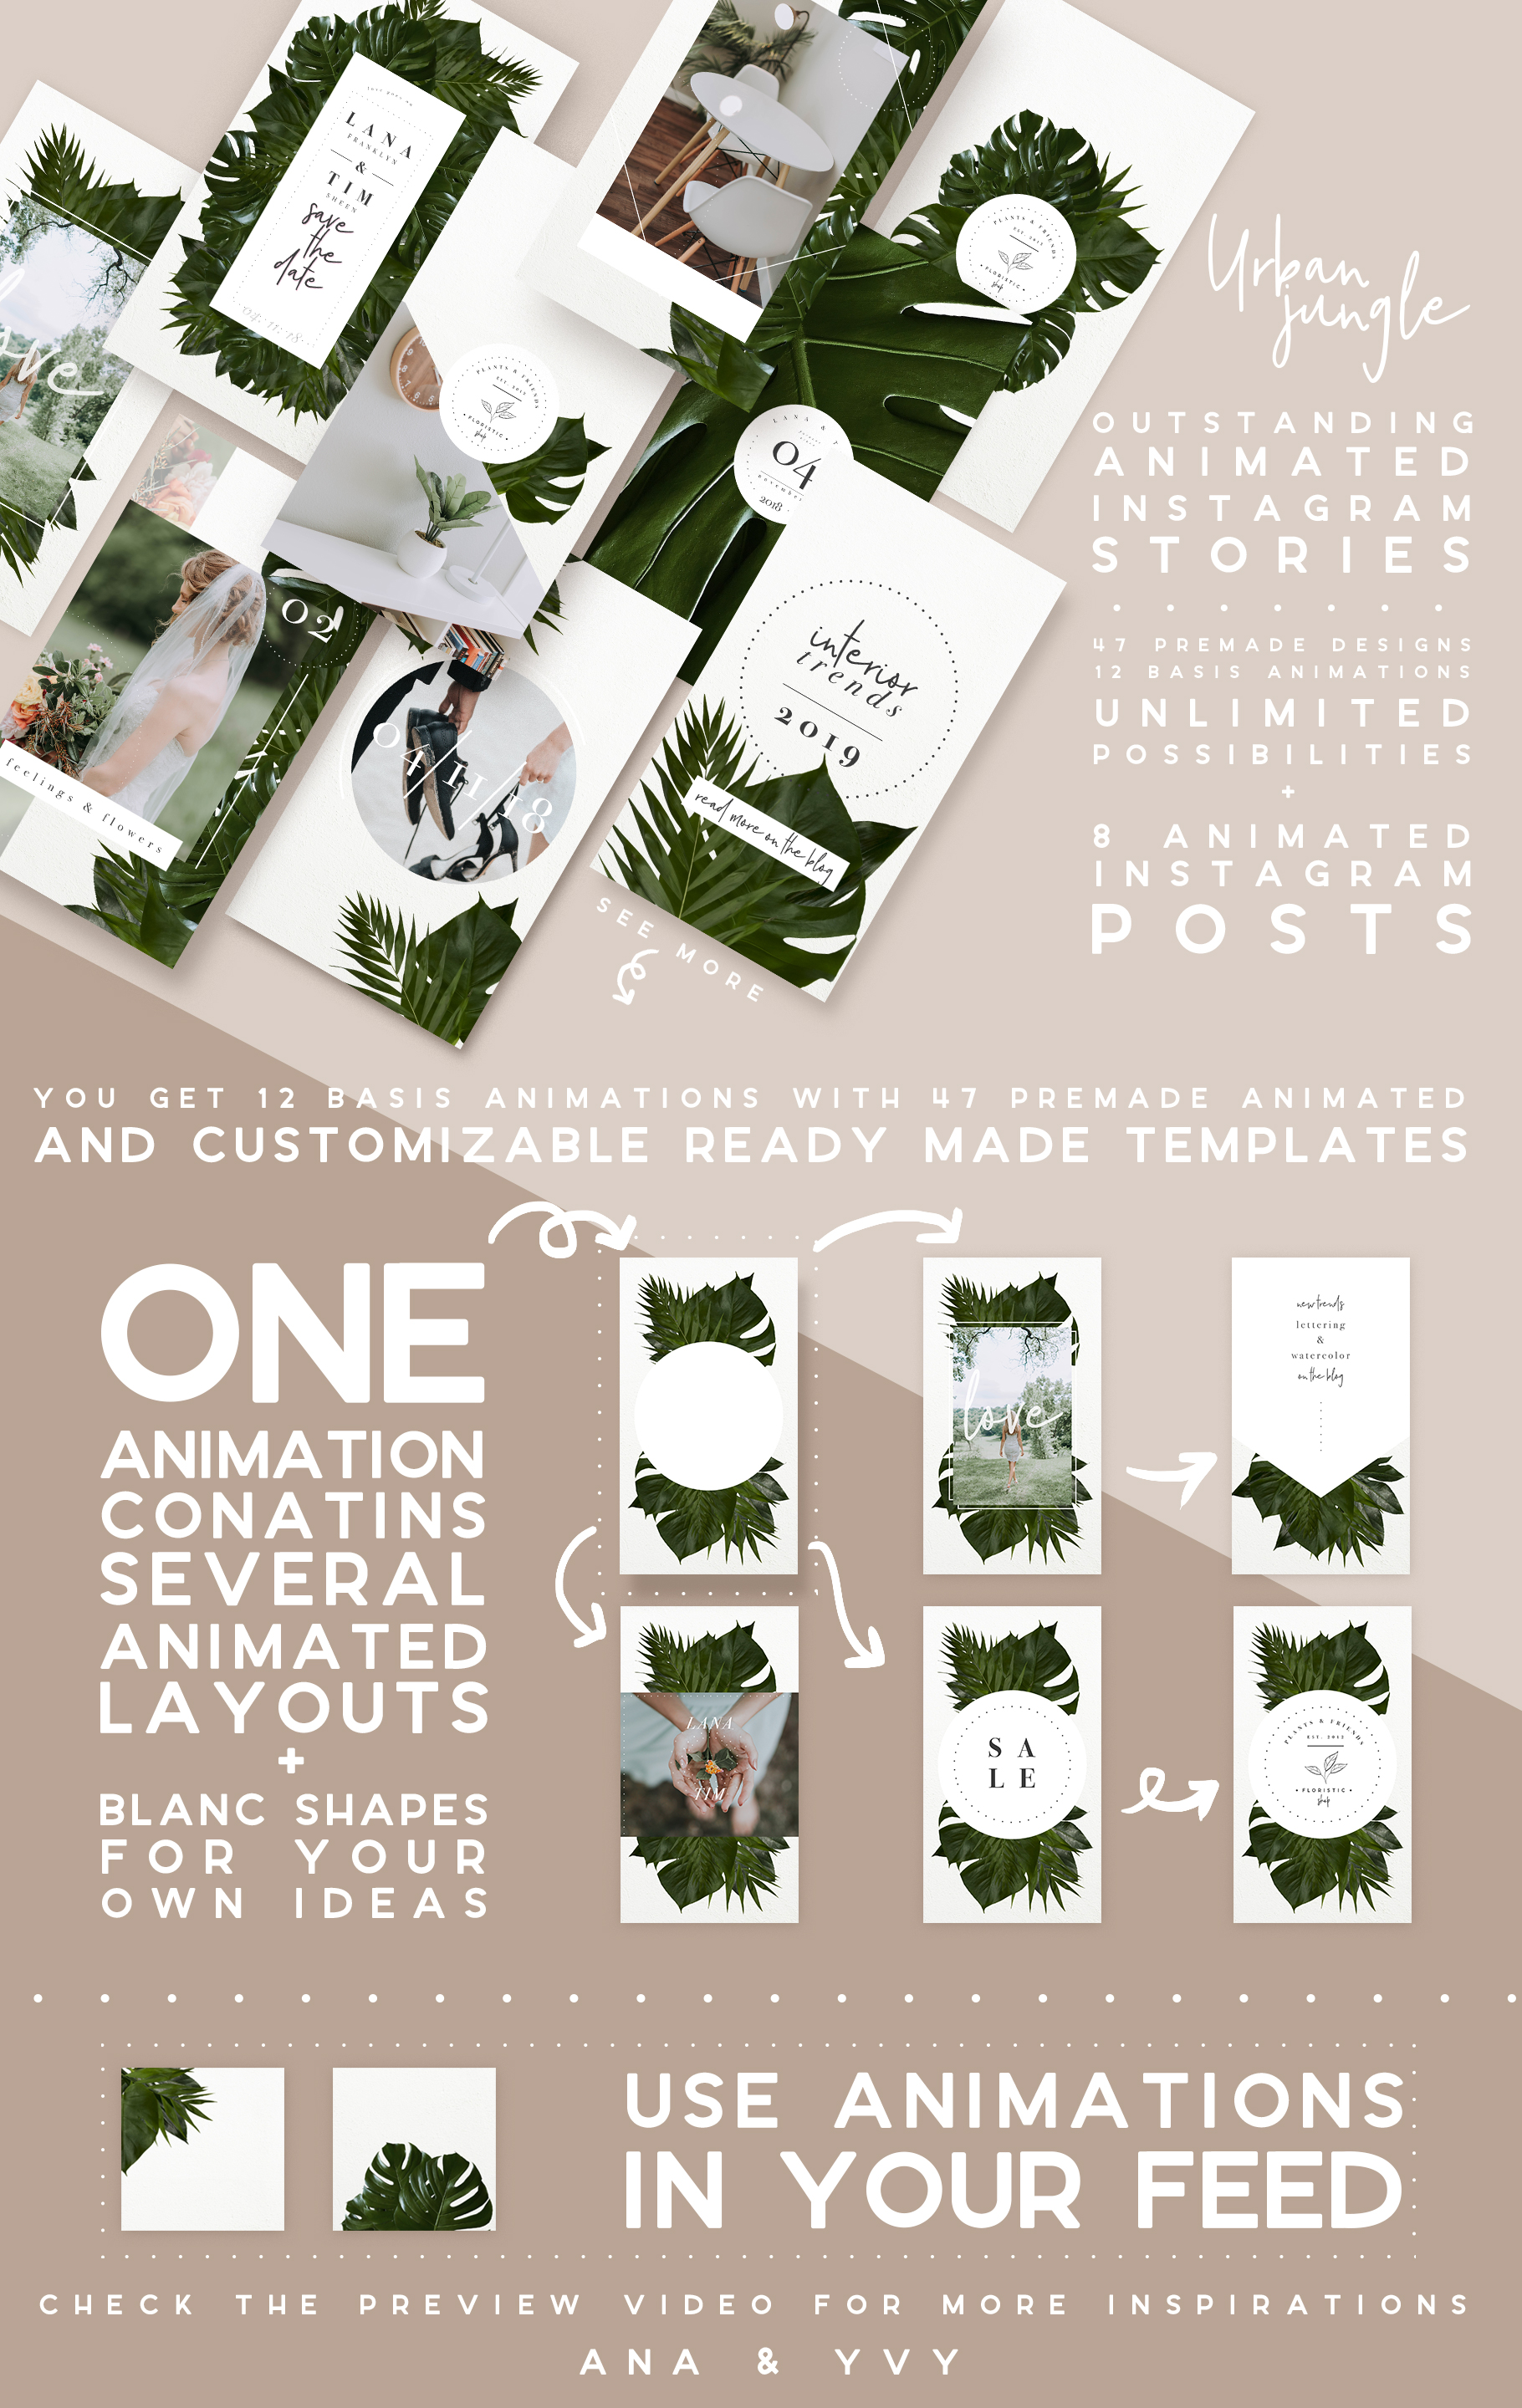 urban jungle instagram animated-post story stories greenery palm wedding template graphic business premade